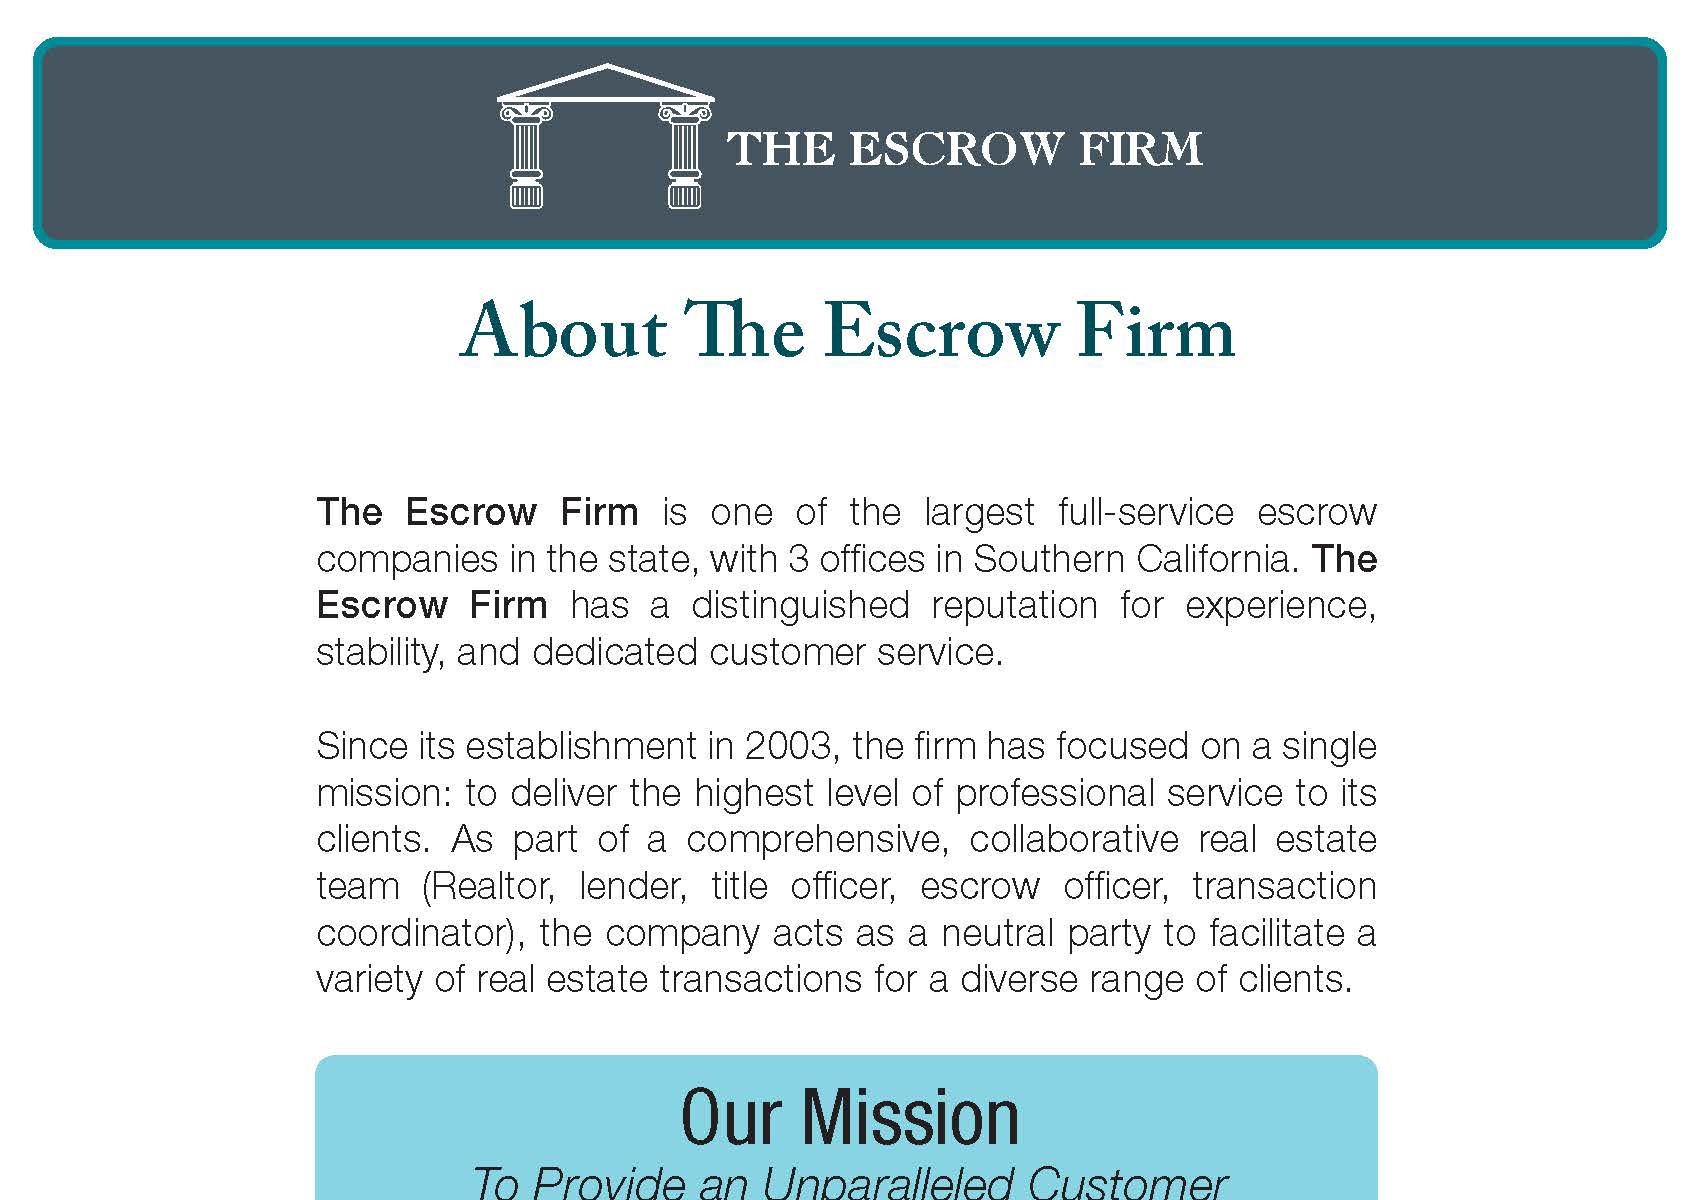 About The Escrow Firm